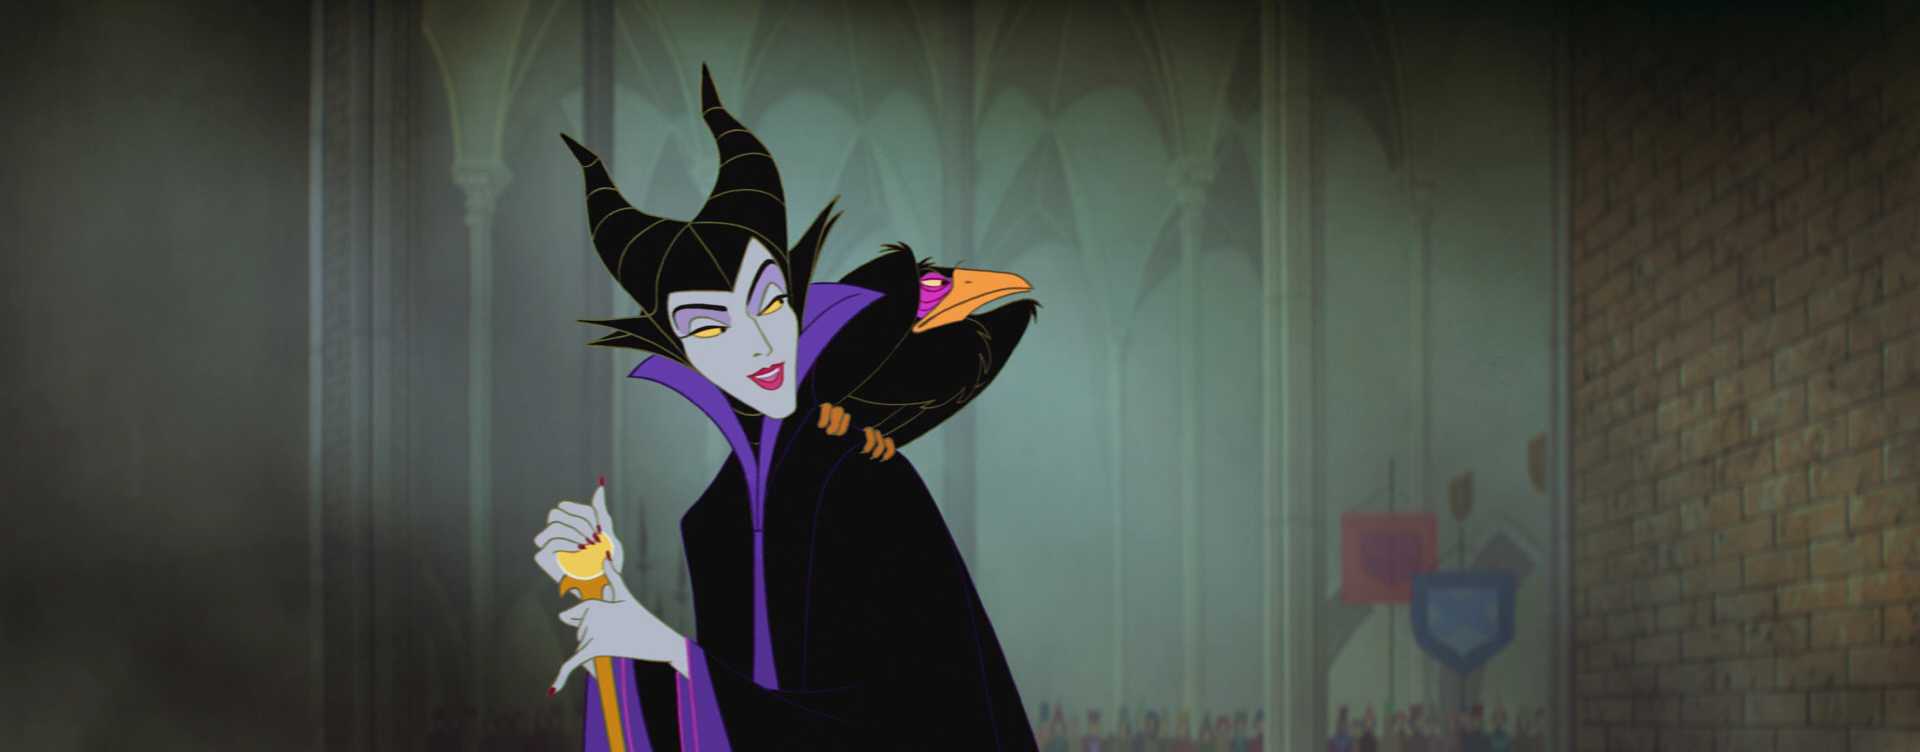 Maleficent Disney Wiki | size of this preview other resolutions